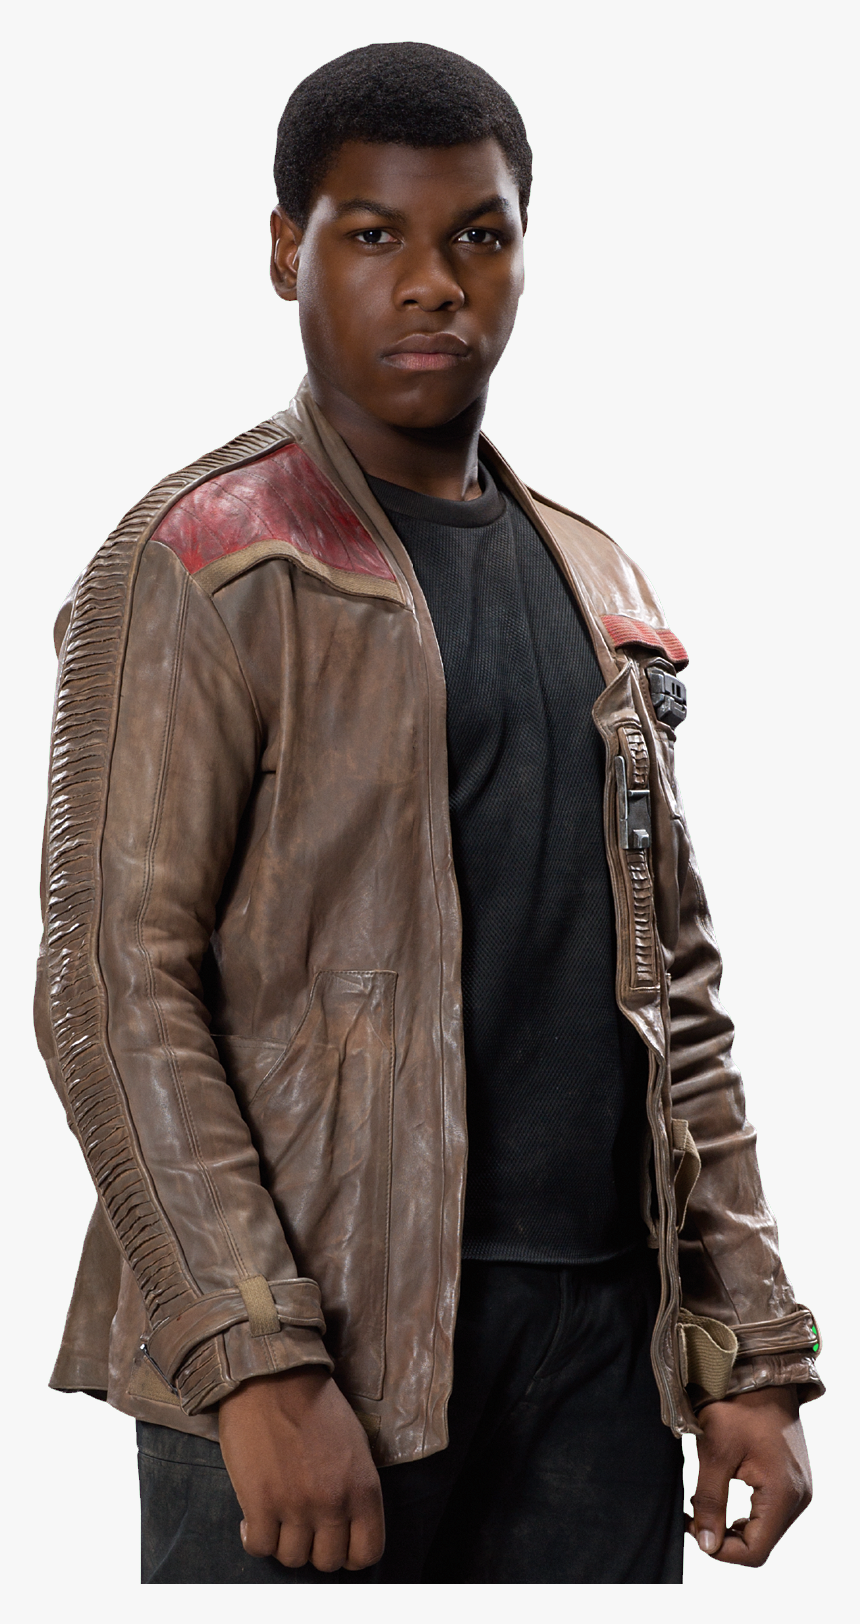 Star Wars The Force Awakens Finn Poe Dameron Leather Finn Star Wars Transparent Background Hd Png Download Kindpng